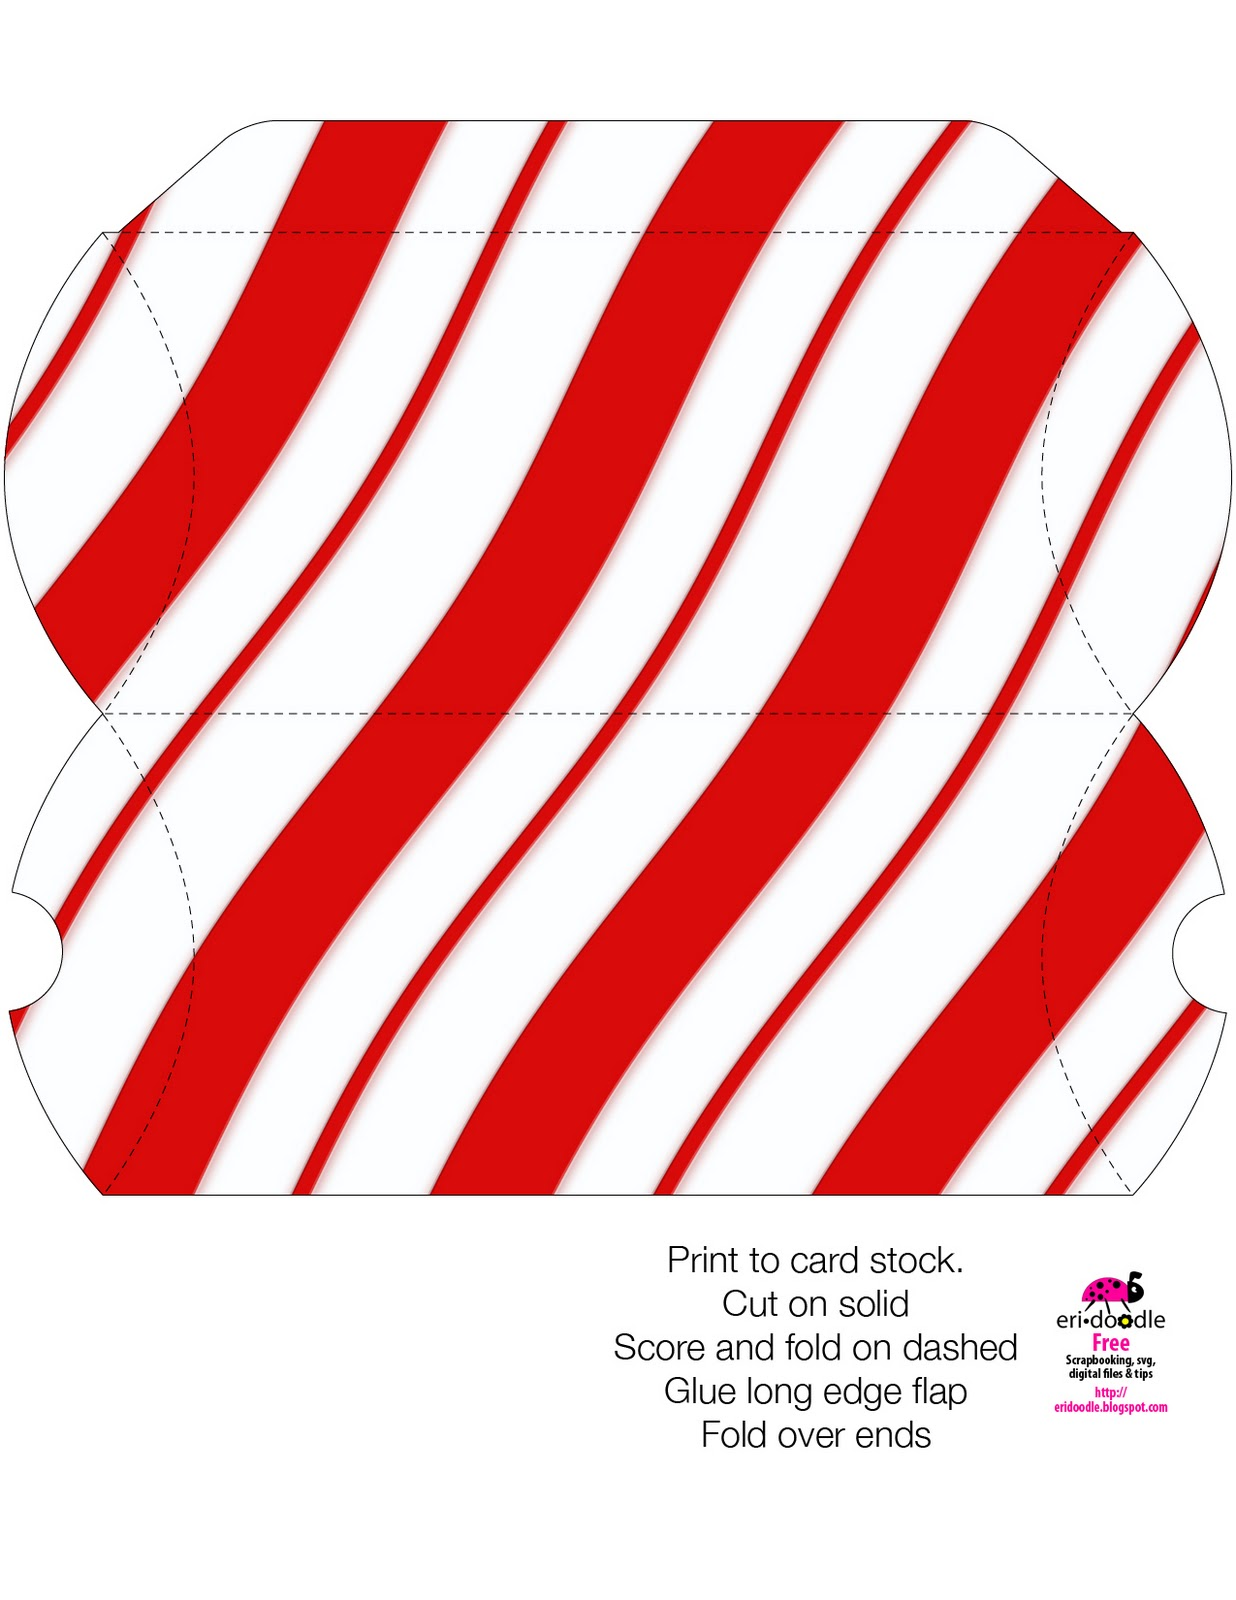 Eridoodle Designs And Creations Small Candy Cane Gift Box Template